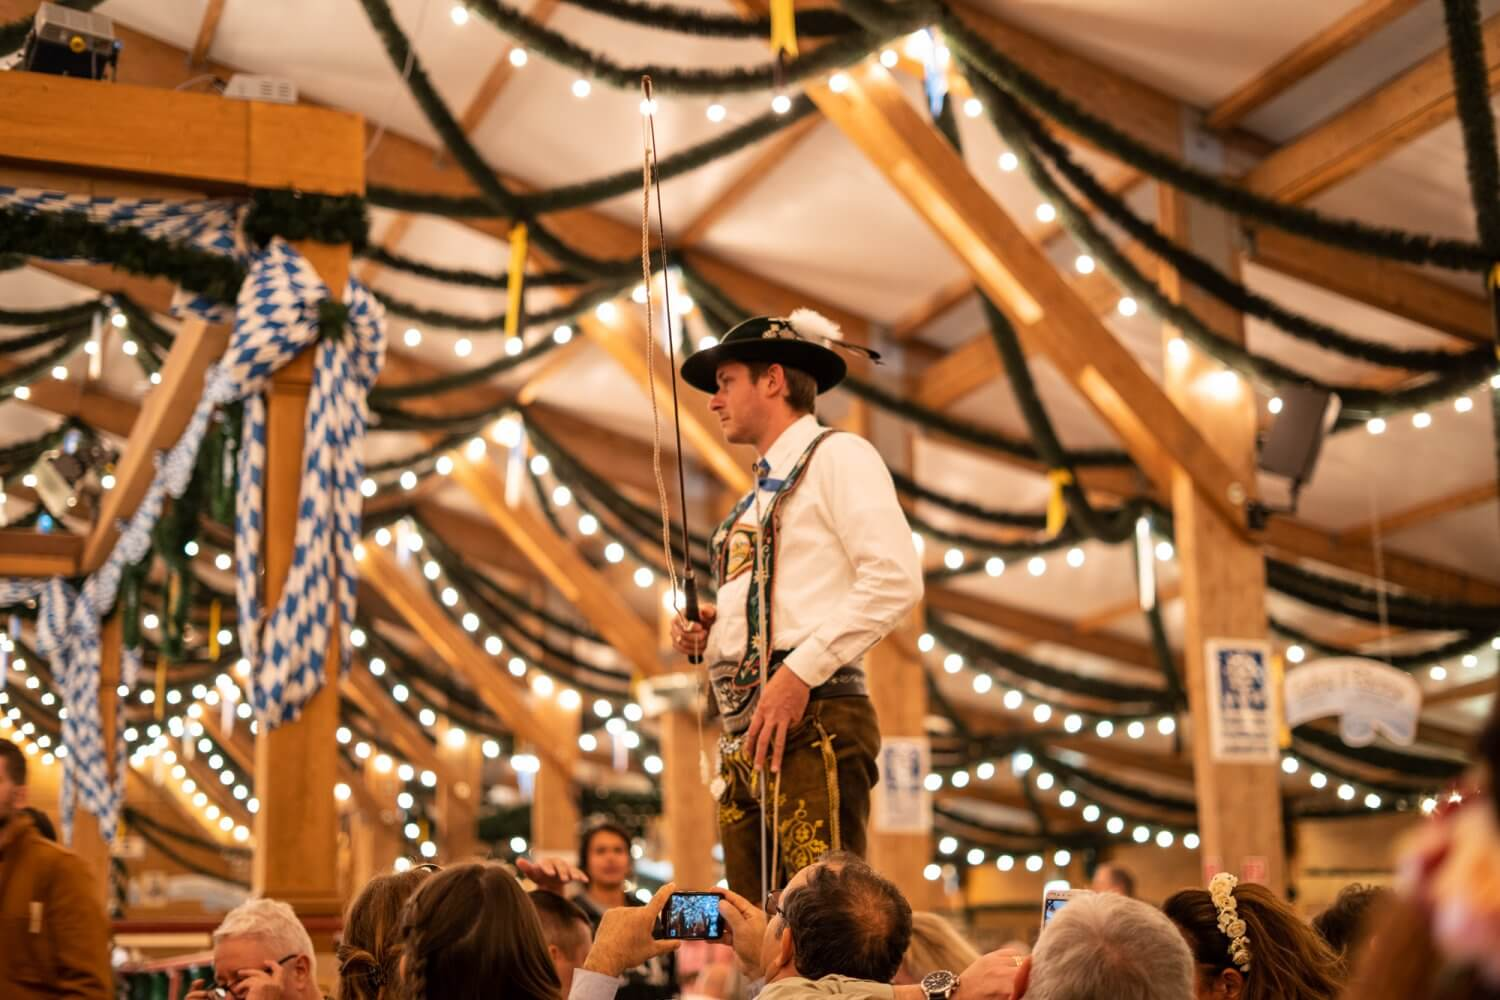 Whipcracking at Oktoberfest in Munich, Germany